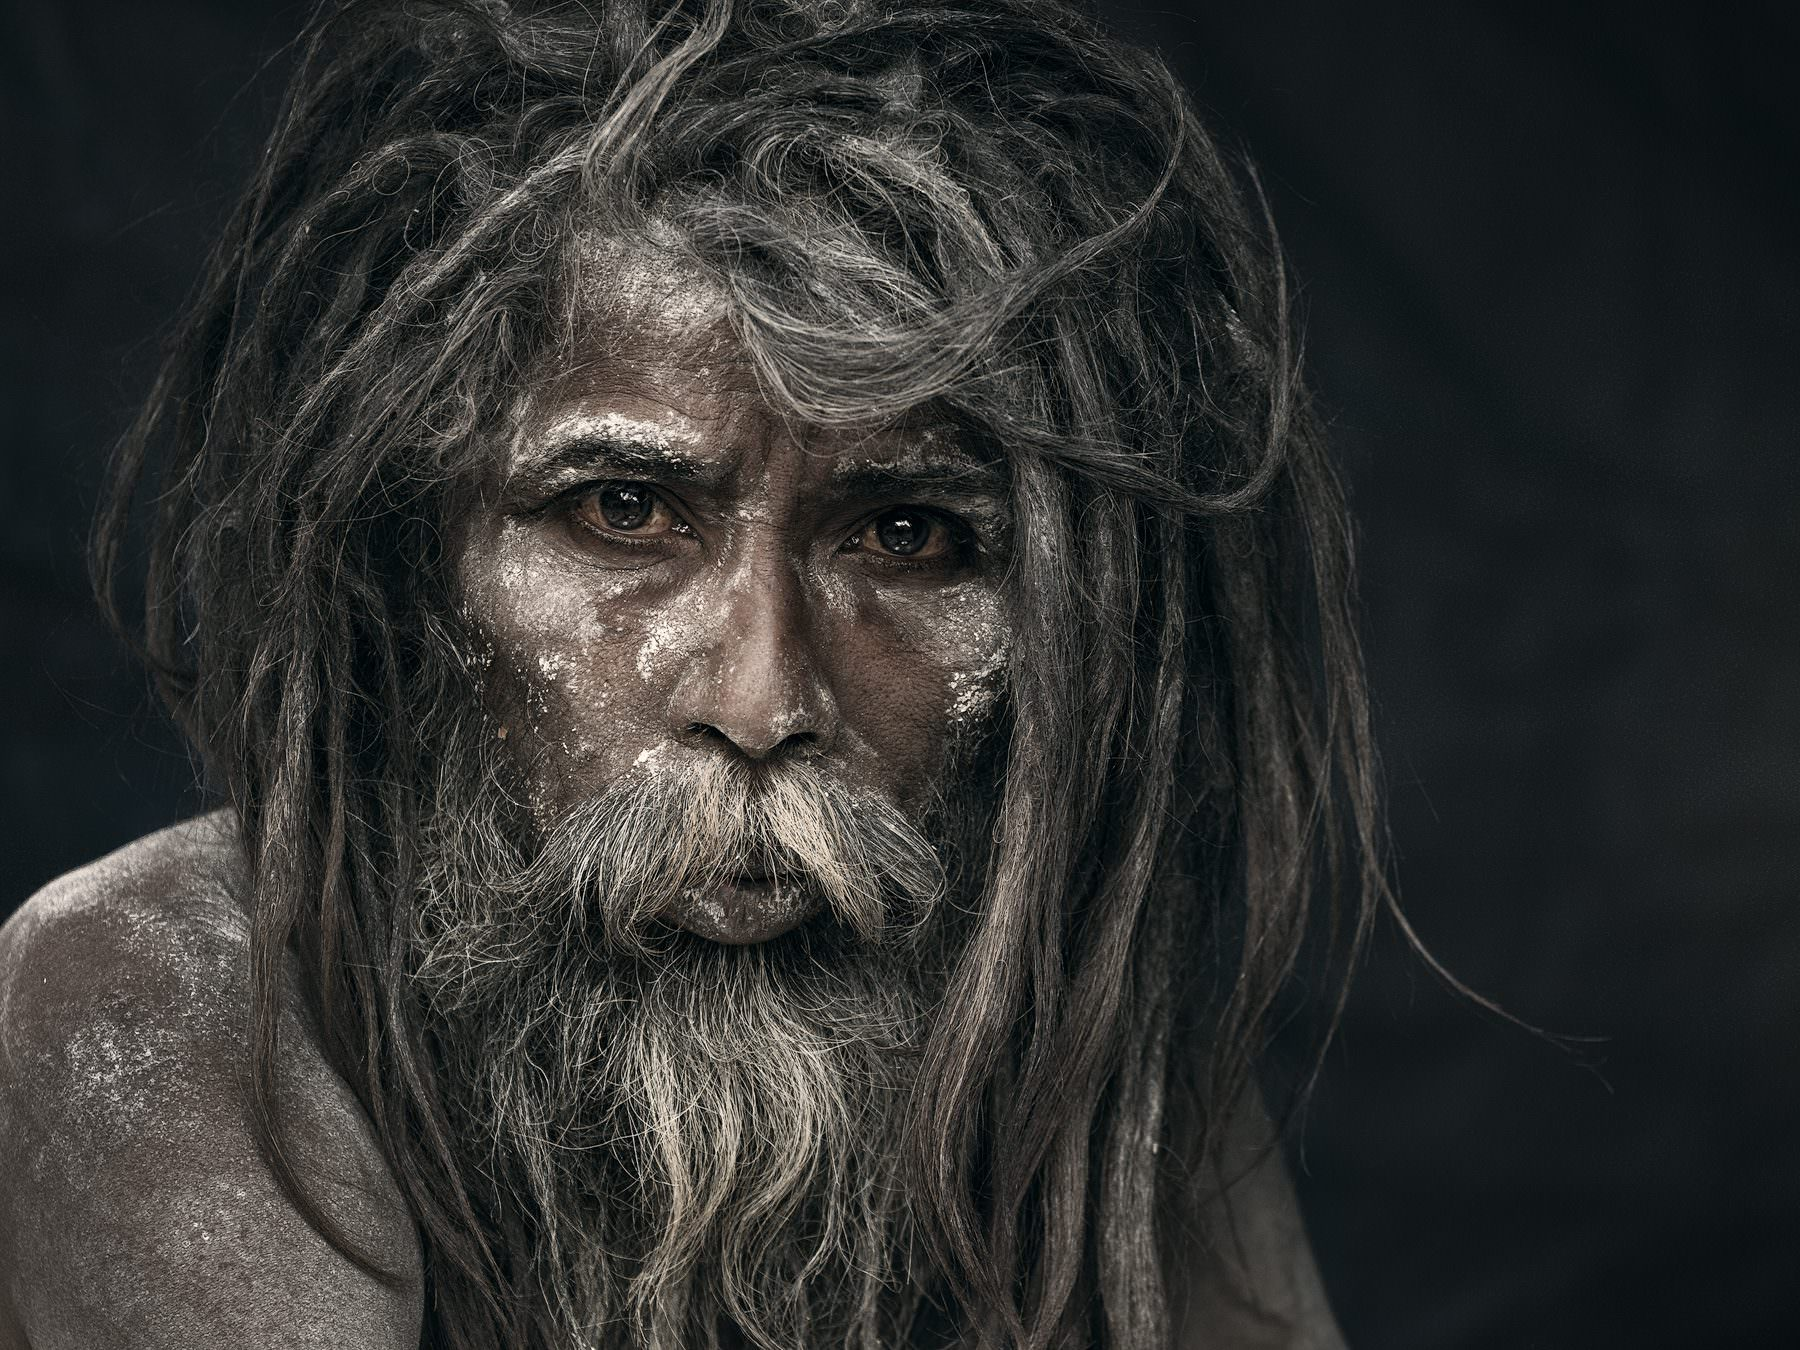 """He is gone - from the portrait series """"The holy men of Varanasi"""" © by Gerry Pacher"""